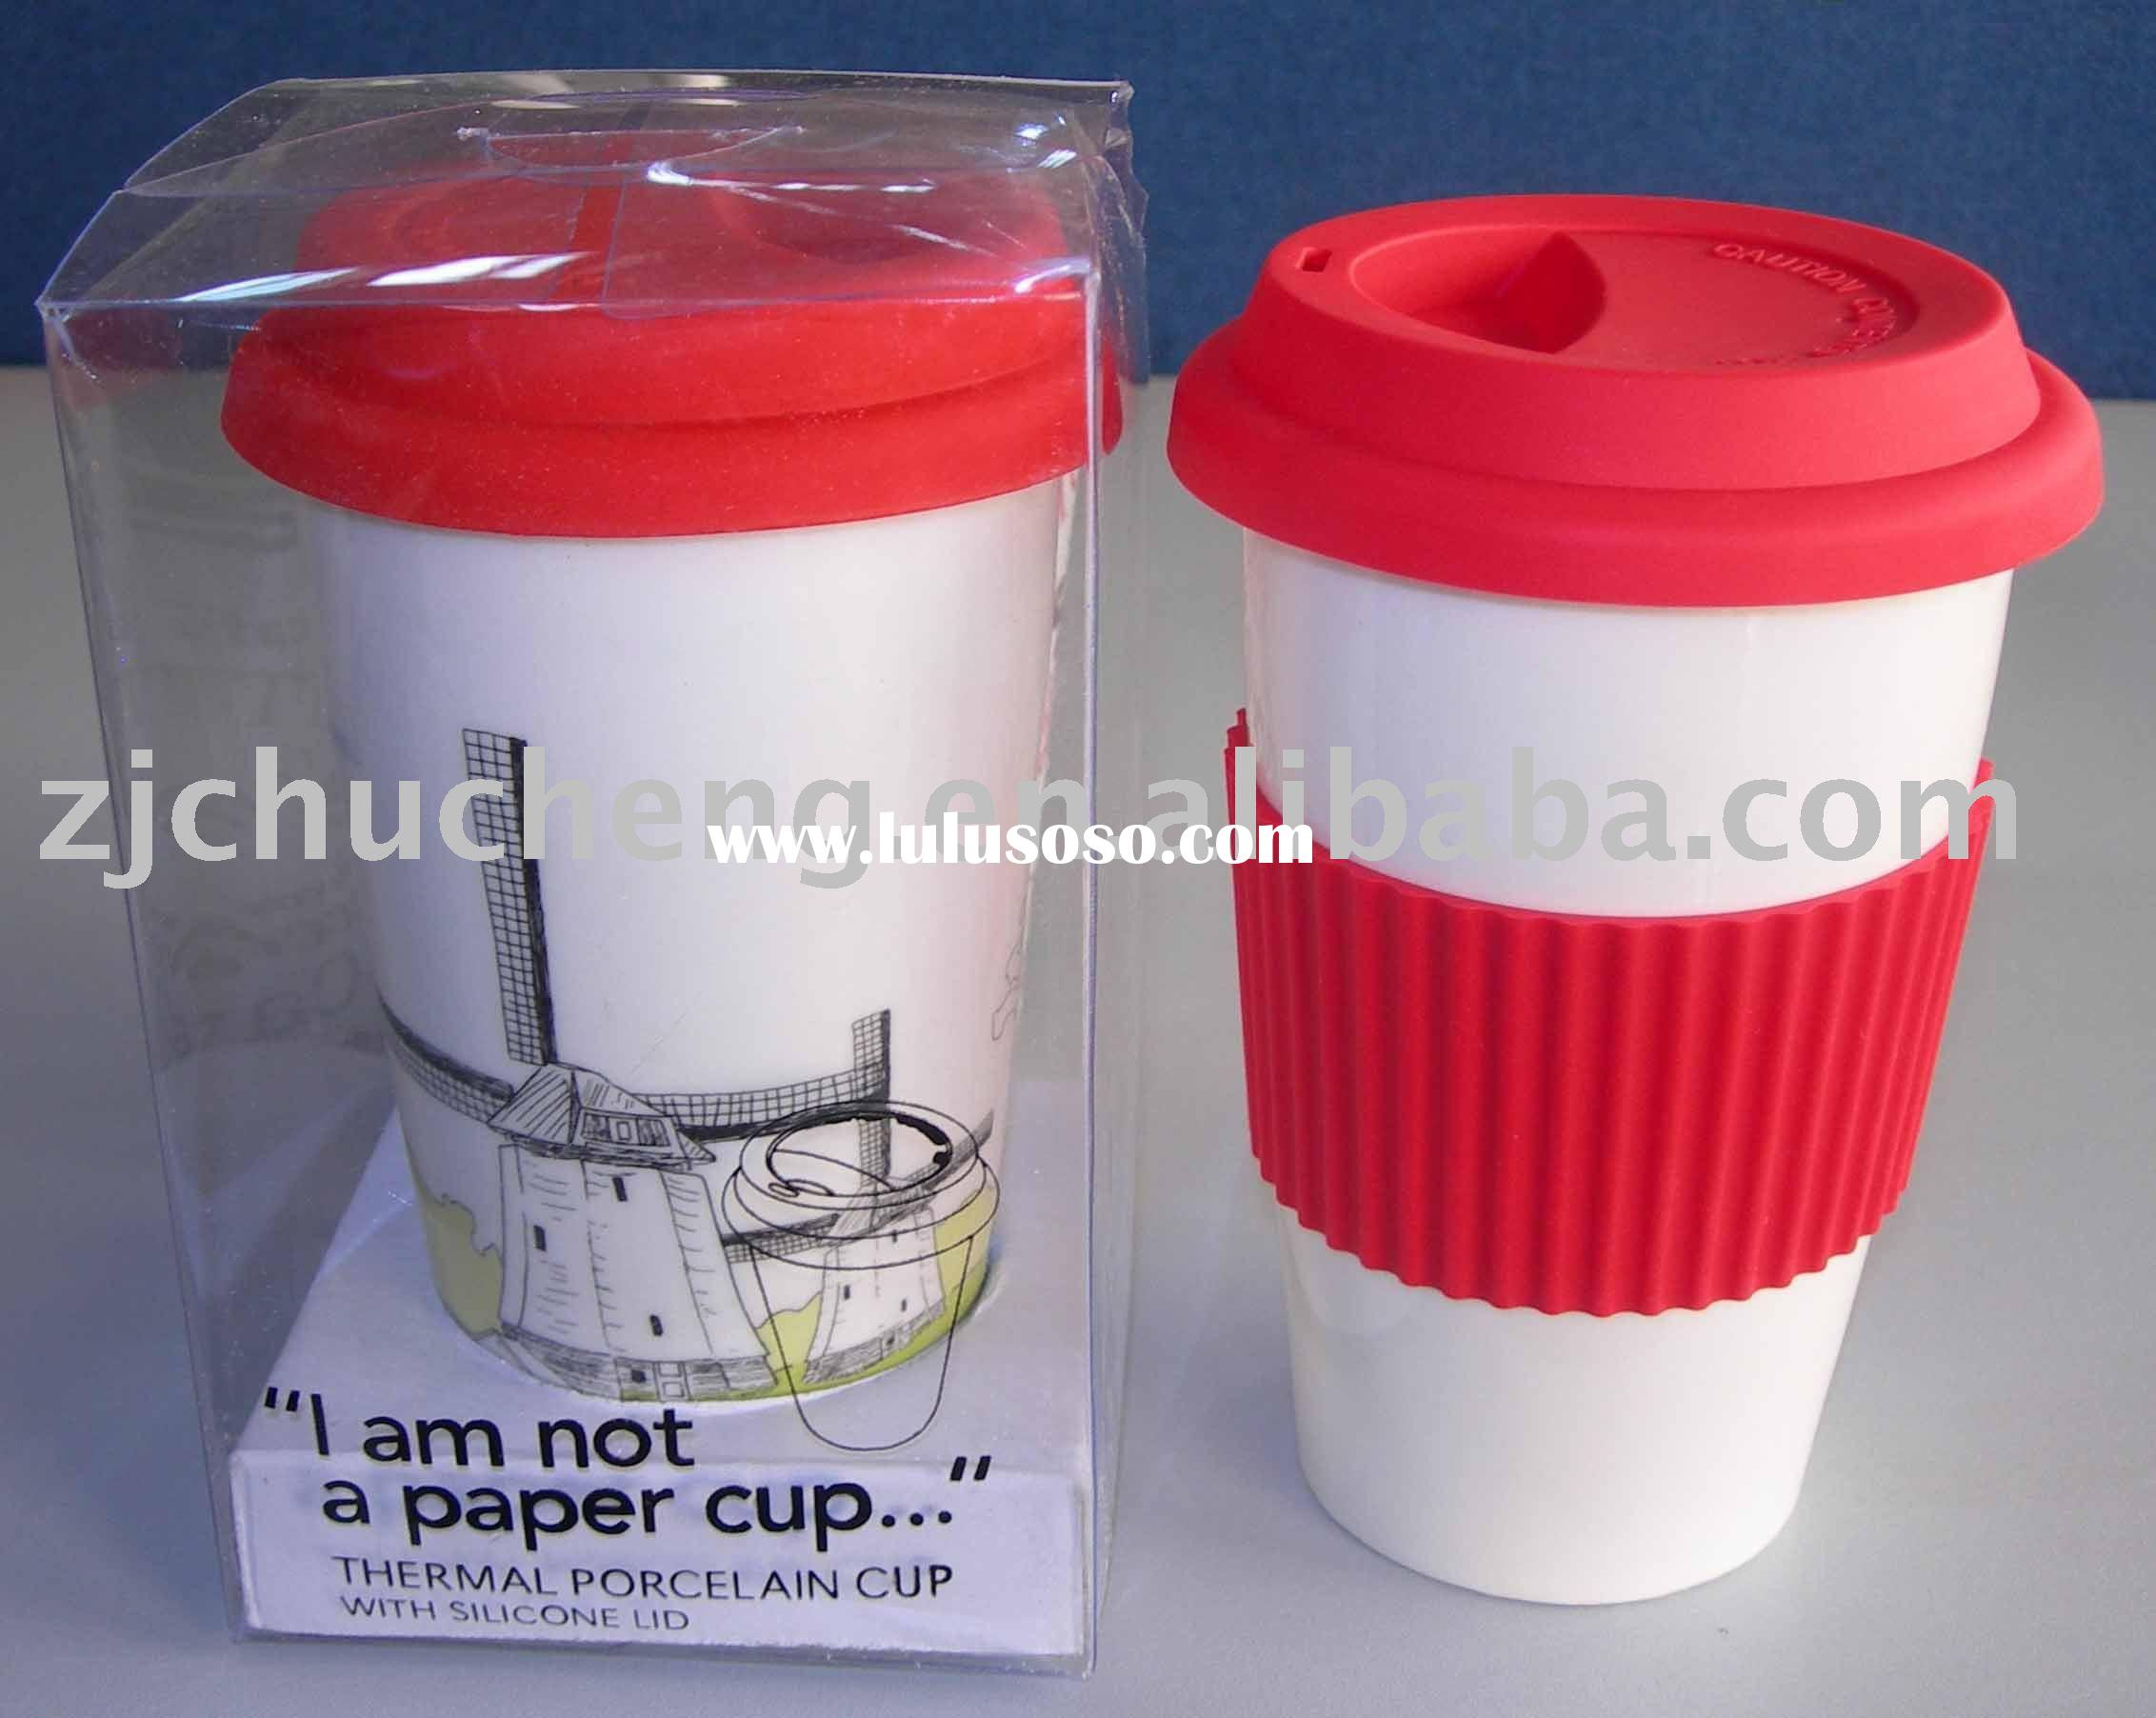 i am not a paper cup This eco cup or i am not a paper cup looks very much like those paper cups commonly used to serve premium coffee at starbucks or coffee bean however, it is definitely not a paper cup – the body is made of porcelain while the cover and grip is made of food grade silicone rubberized material.